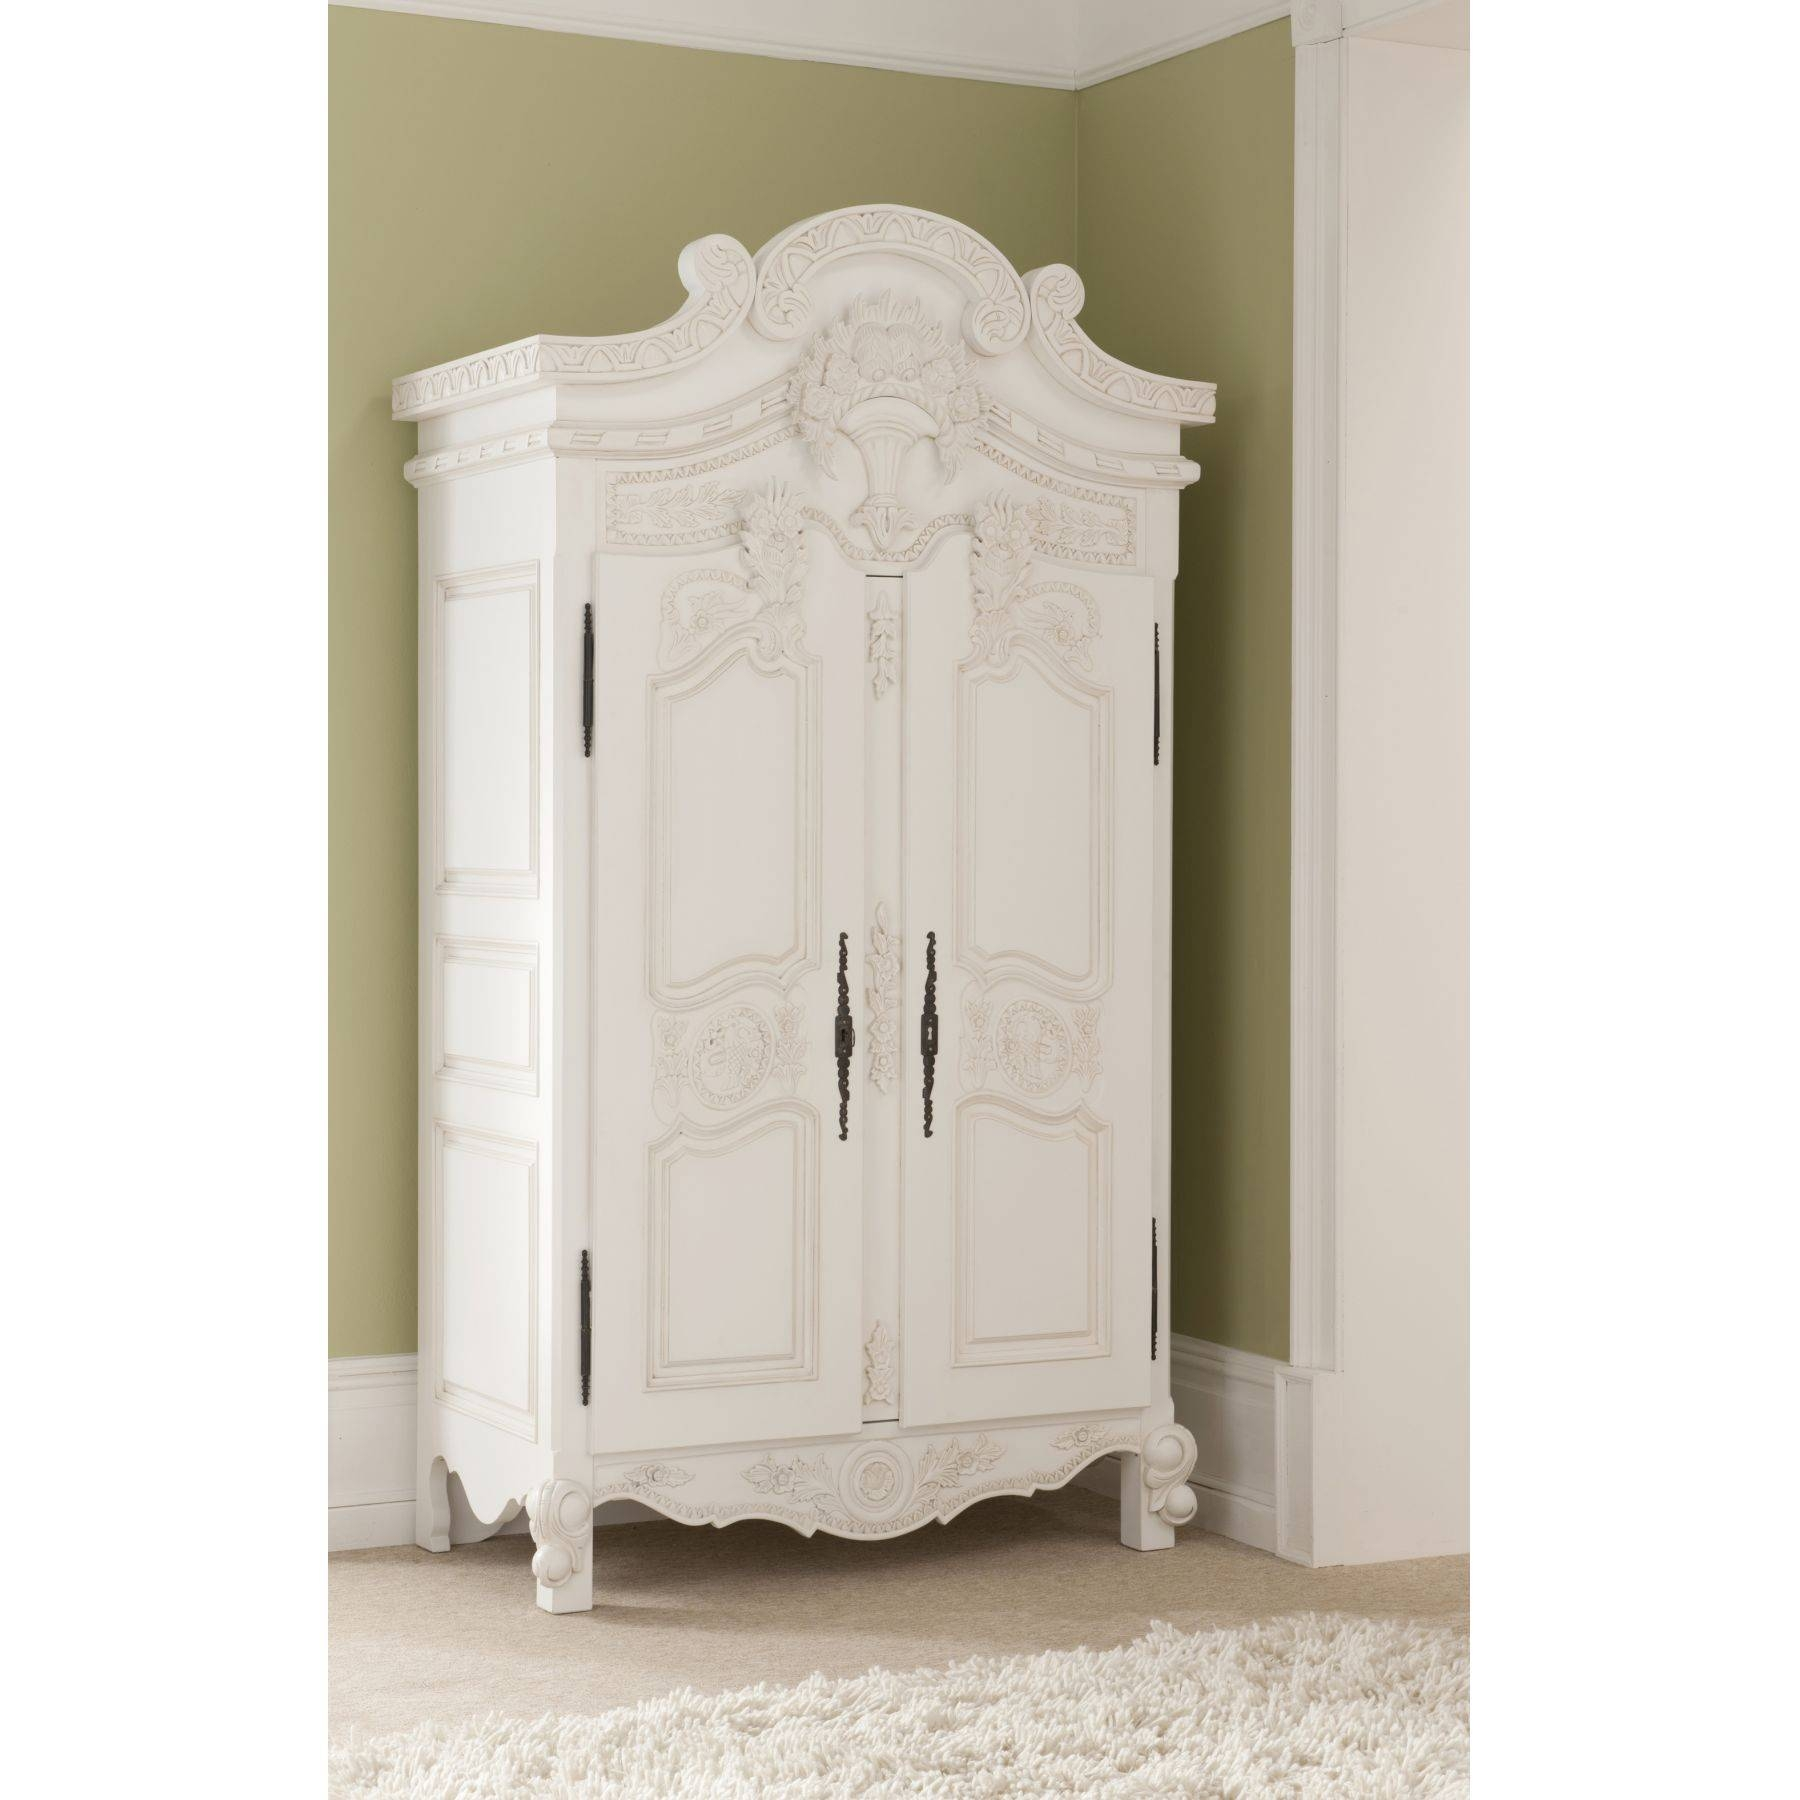 Rococo Antique French Wardrobe A Stunning Addition To Our Shabby with regard to French Shabby Chic Wardrobes (Image 10 of 15)